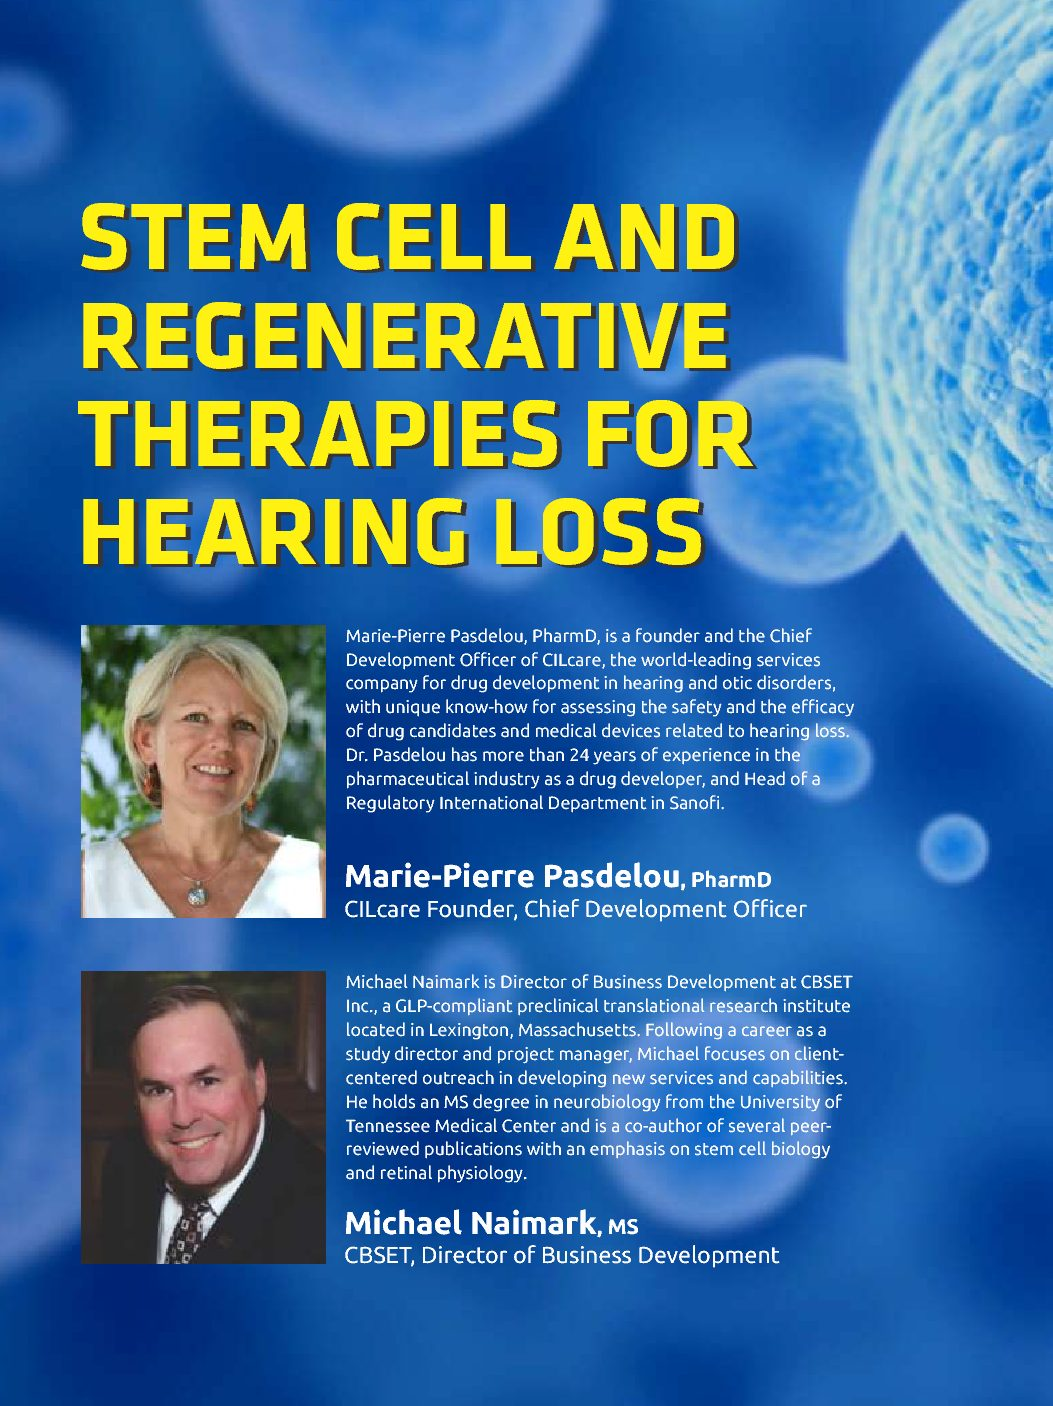 World Pharma Today: Stem cell and regenerative therapies for hearing loss